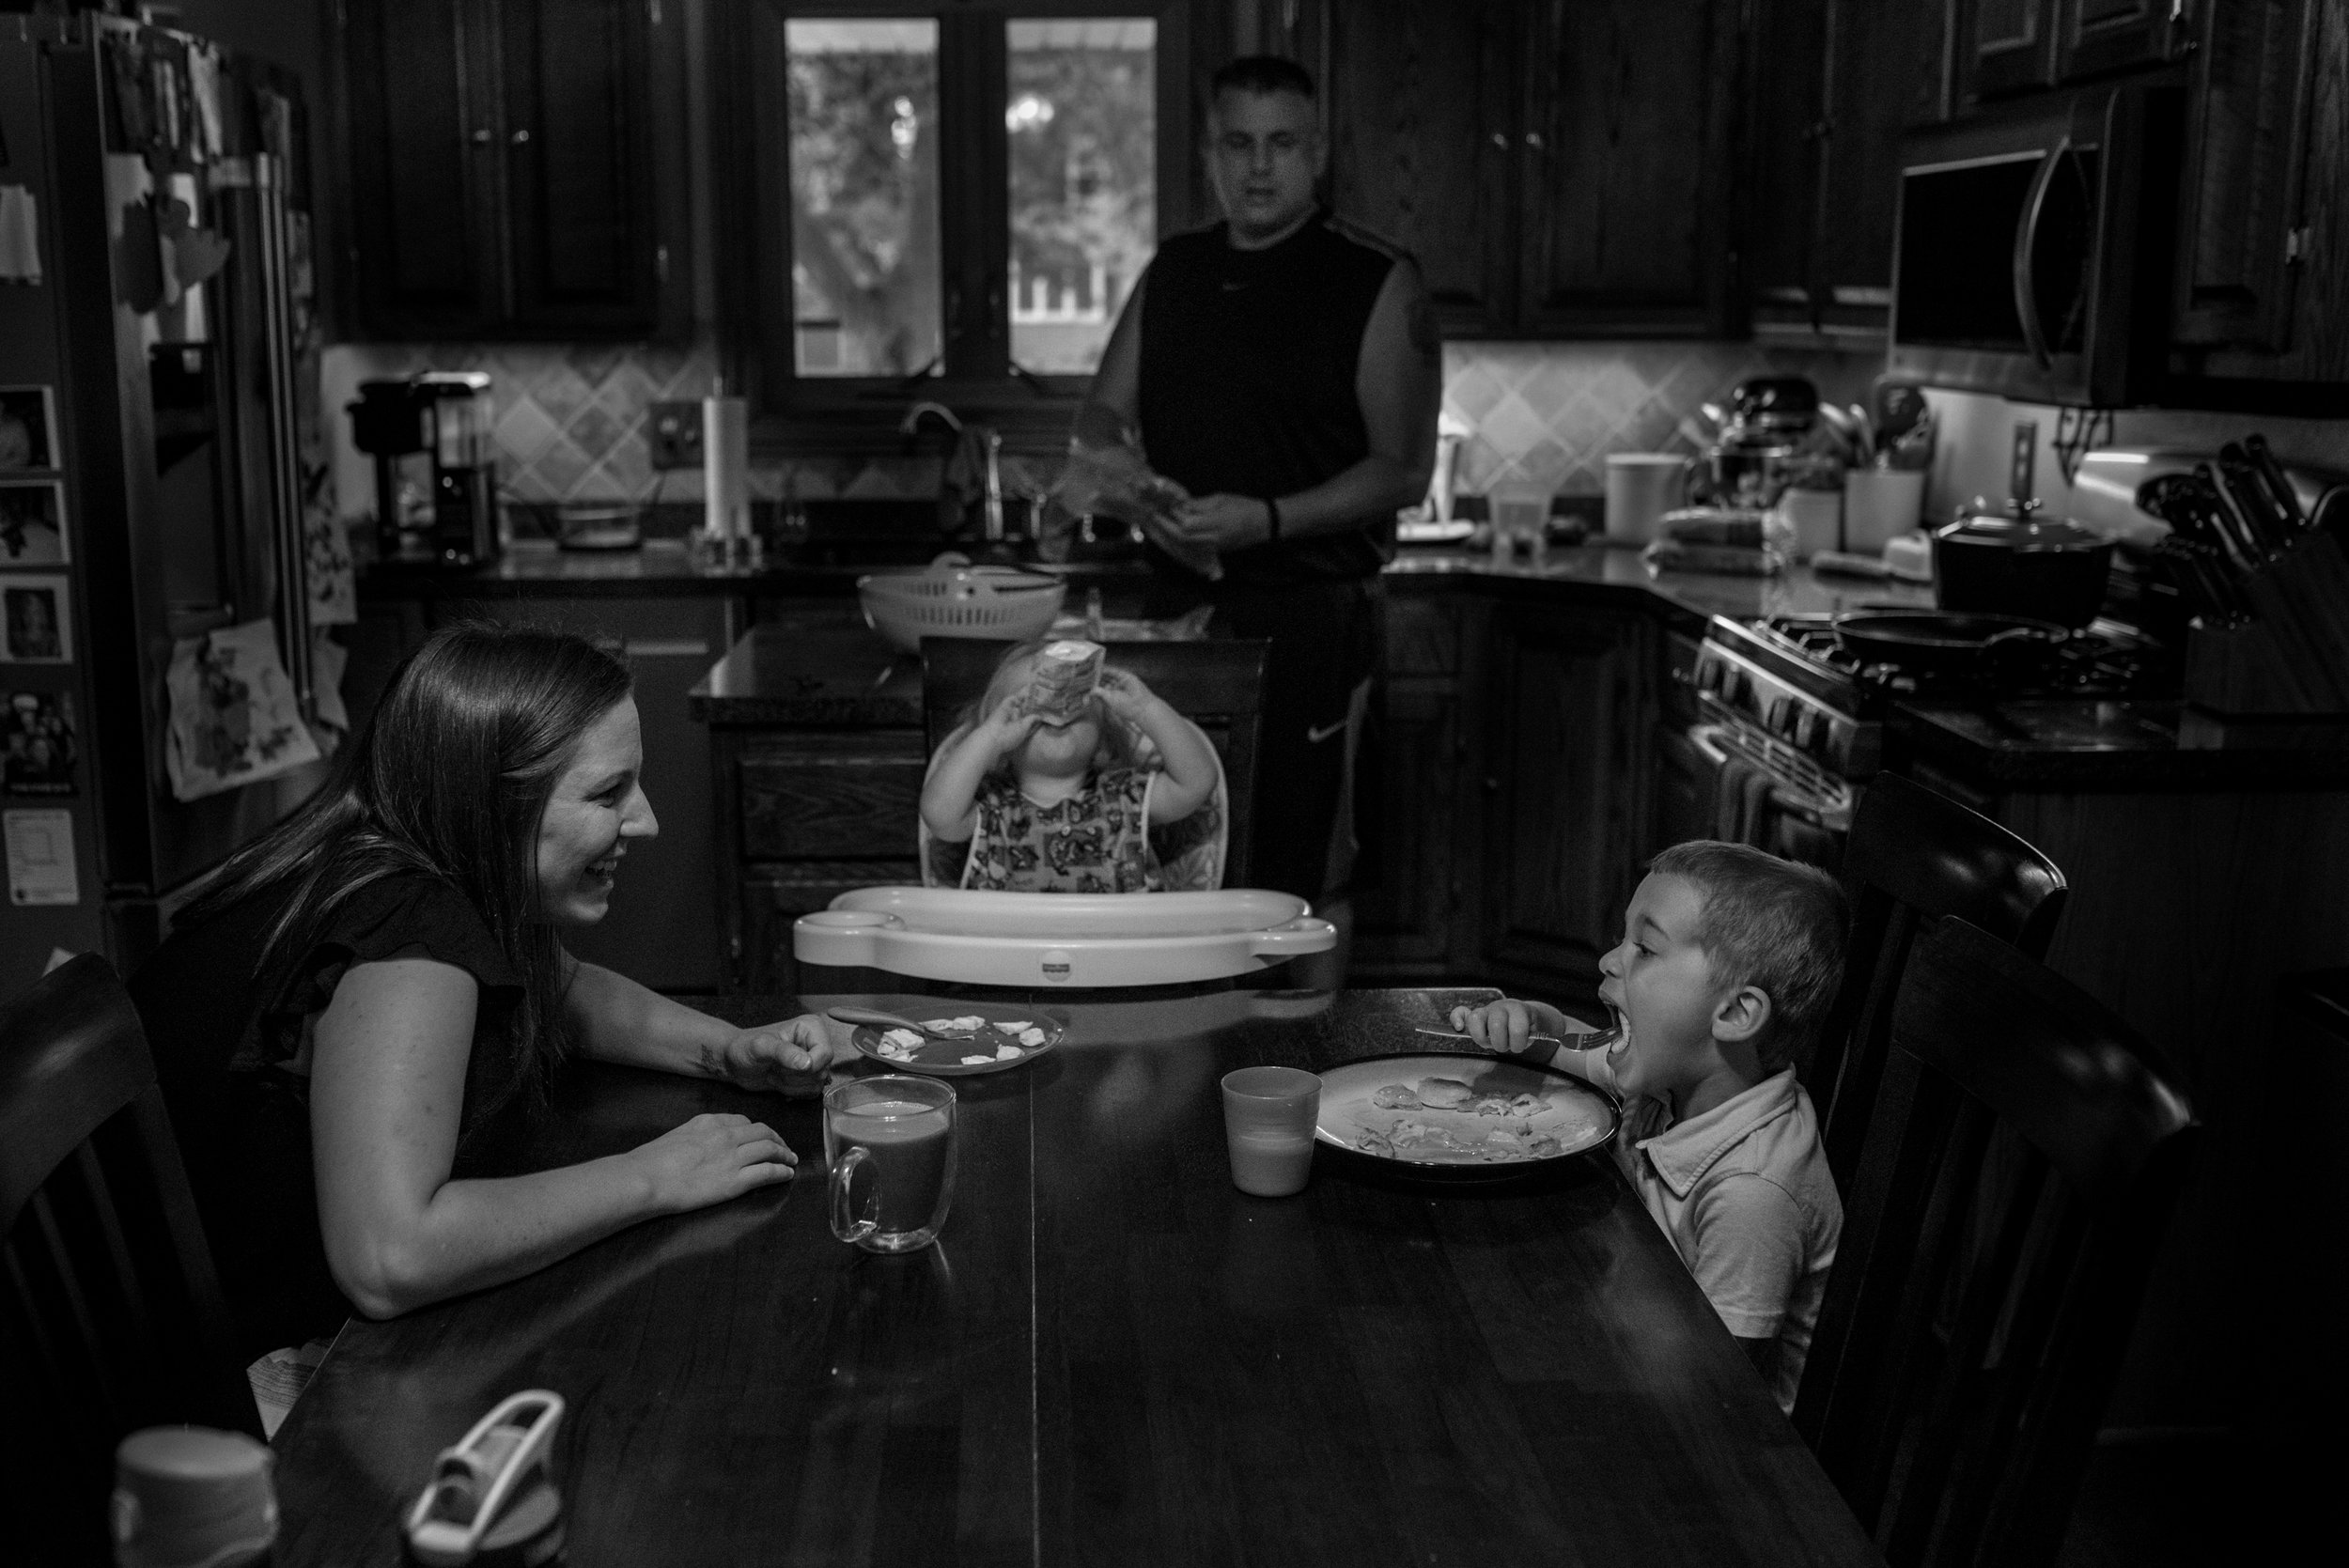 Family of four eating breakfast.  Mom smiling at son eating eggs, daughter eating a pouch and dad drying dishes